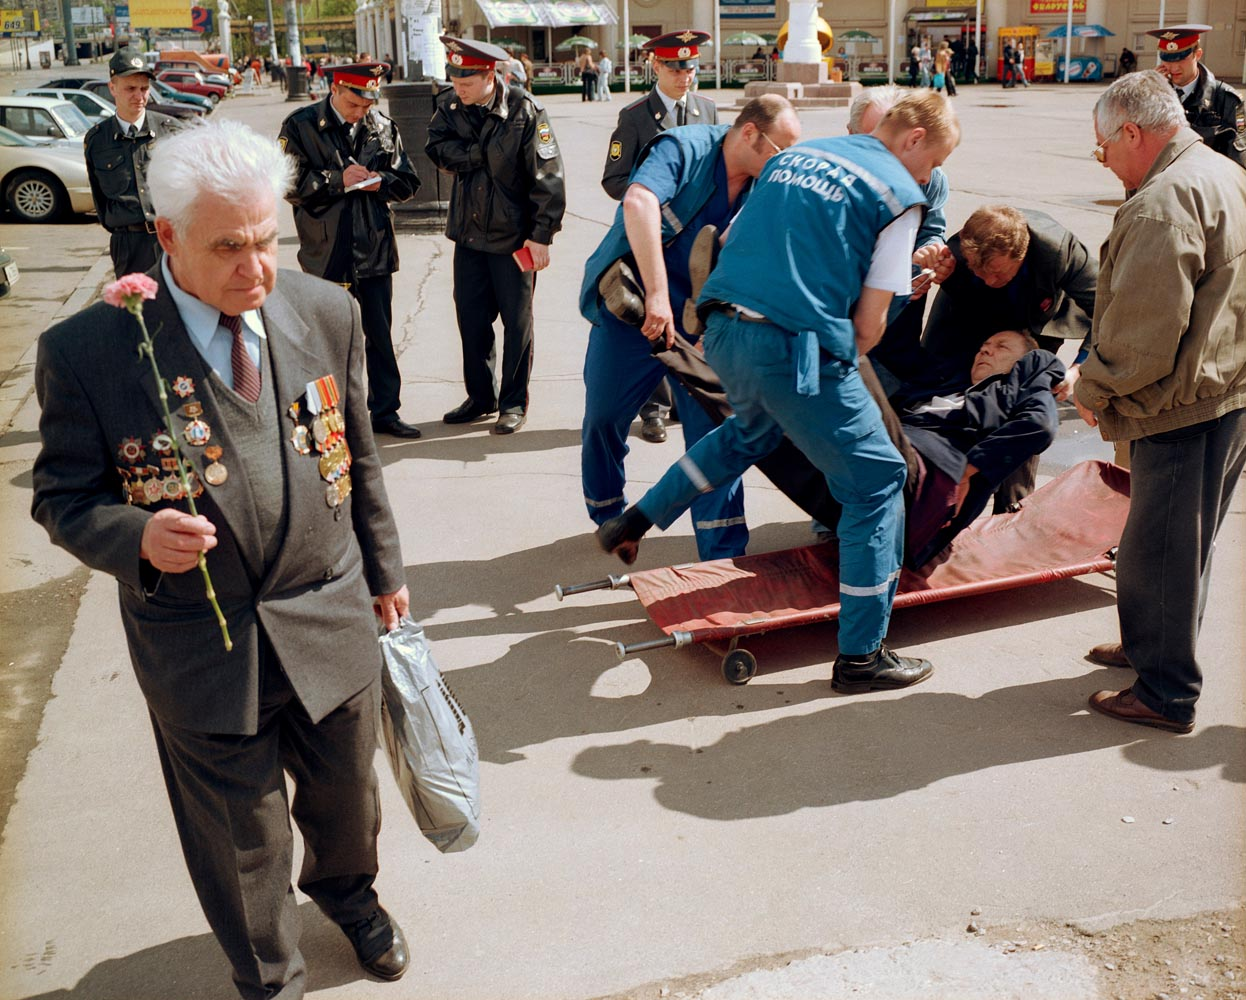 Moscow, Russia. Victory Day celebrations